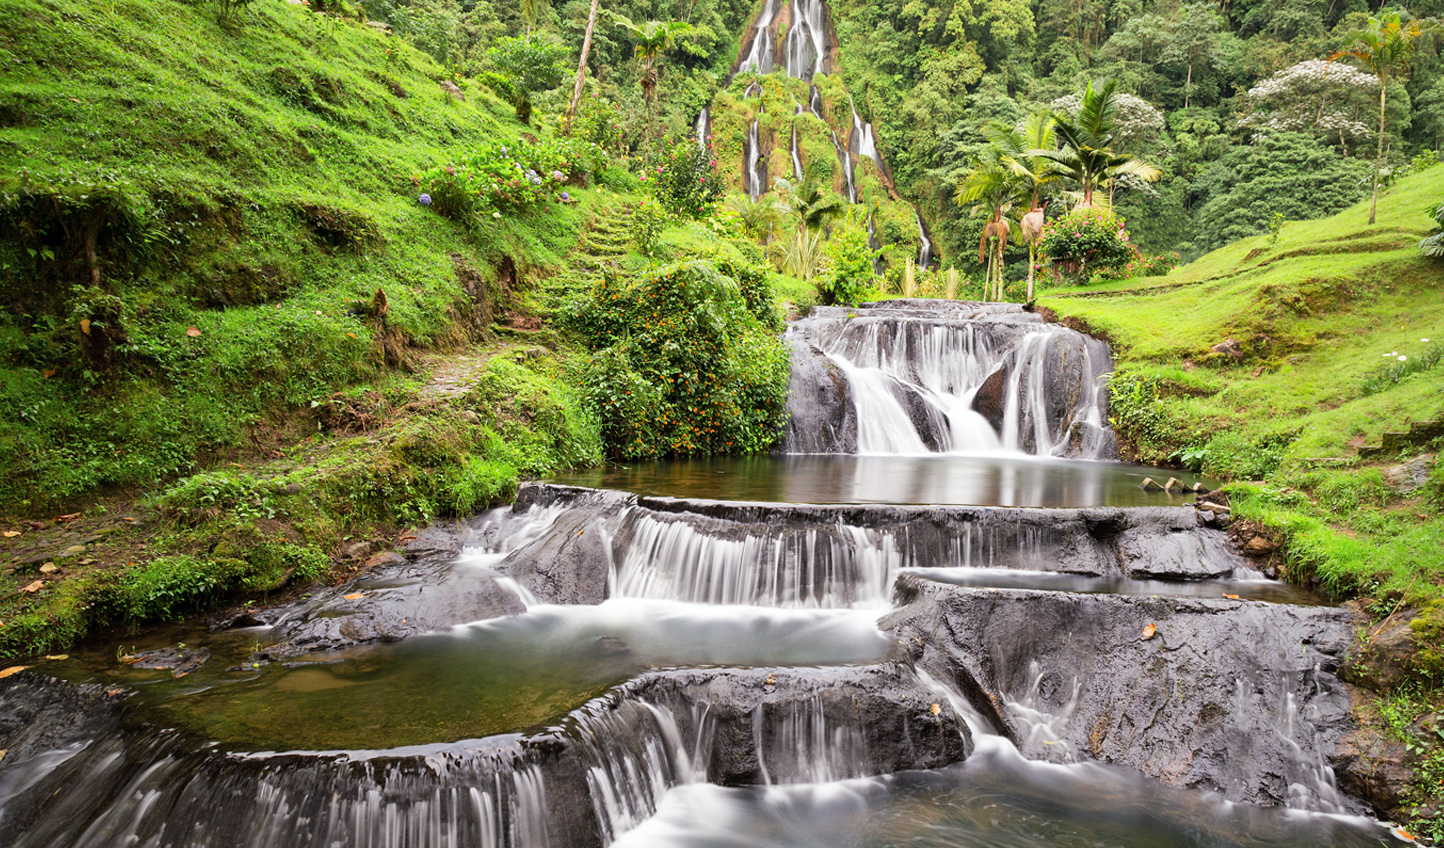 Your trekking in Cafetero will take you to secluded waterfalls